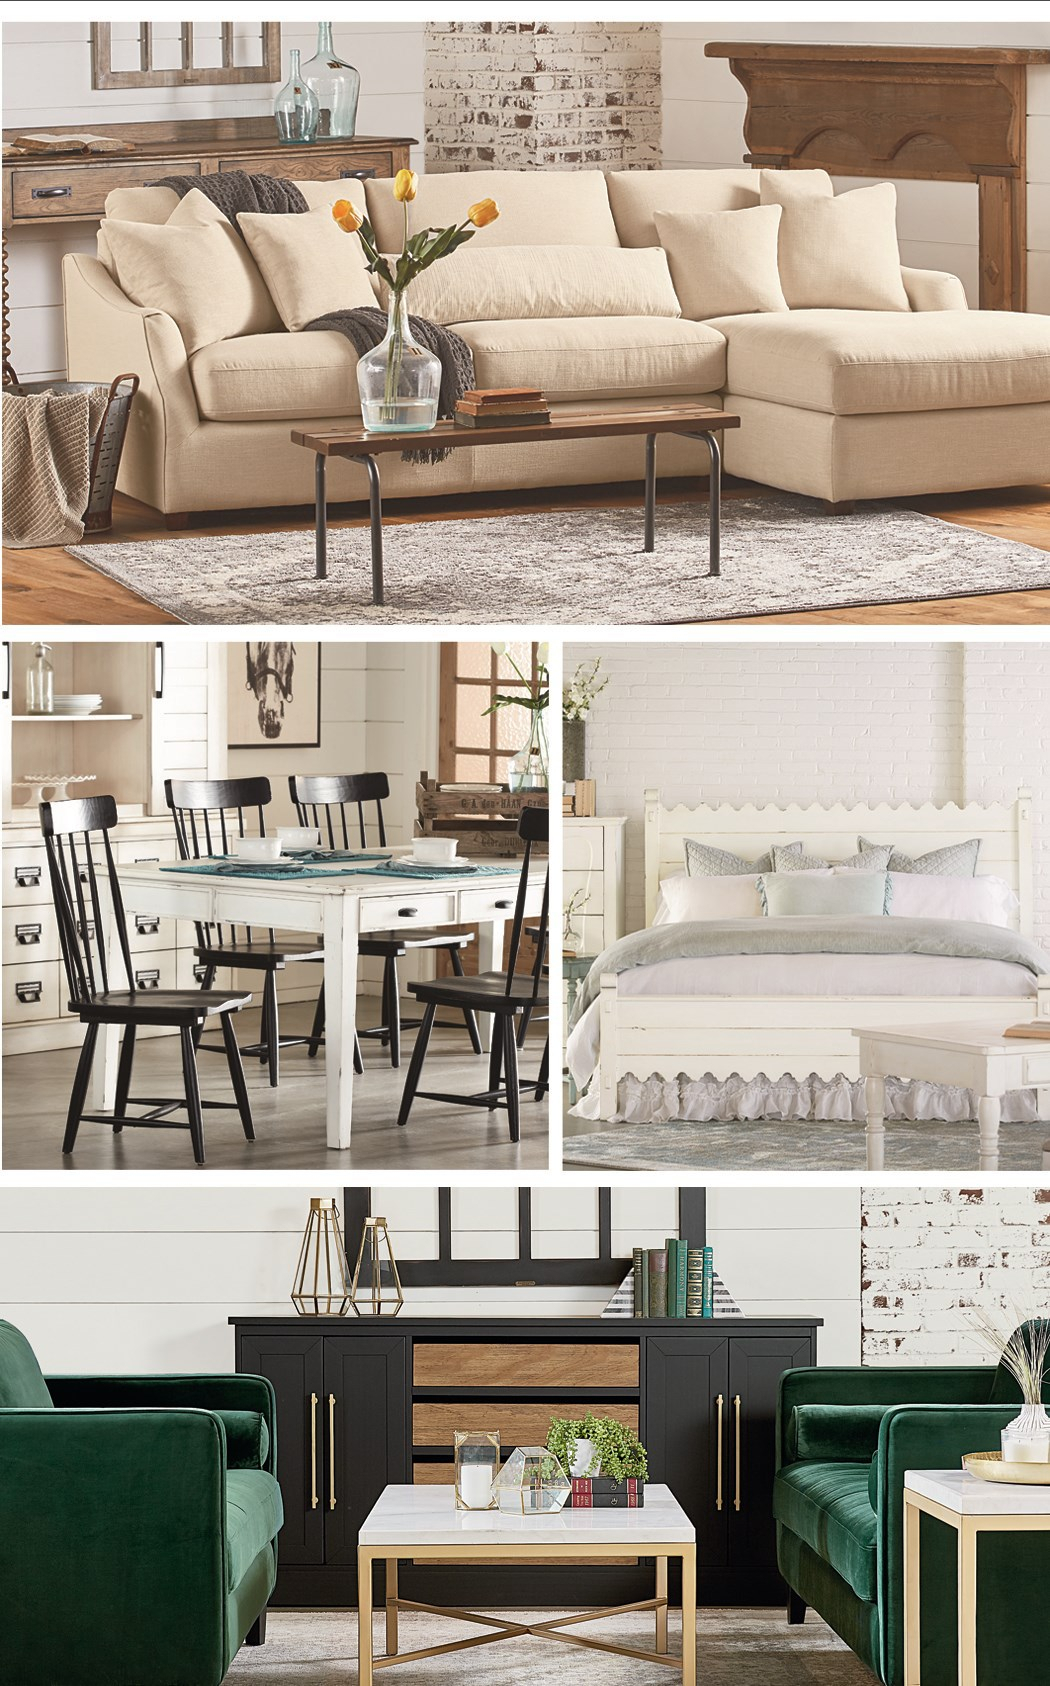 Magnolia Homejoanna Gaines | Baton Rouge And Lafayette With Regard To Magnolia Home Paradigm Sofa Chairs By Joanna Gaines (View 9 of 25)